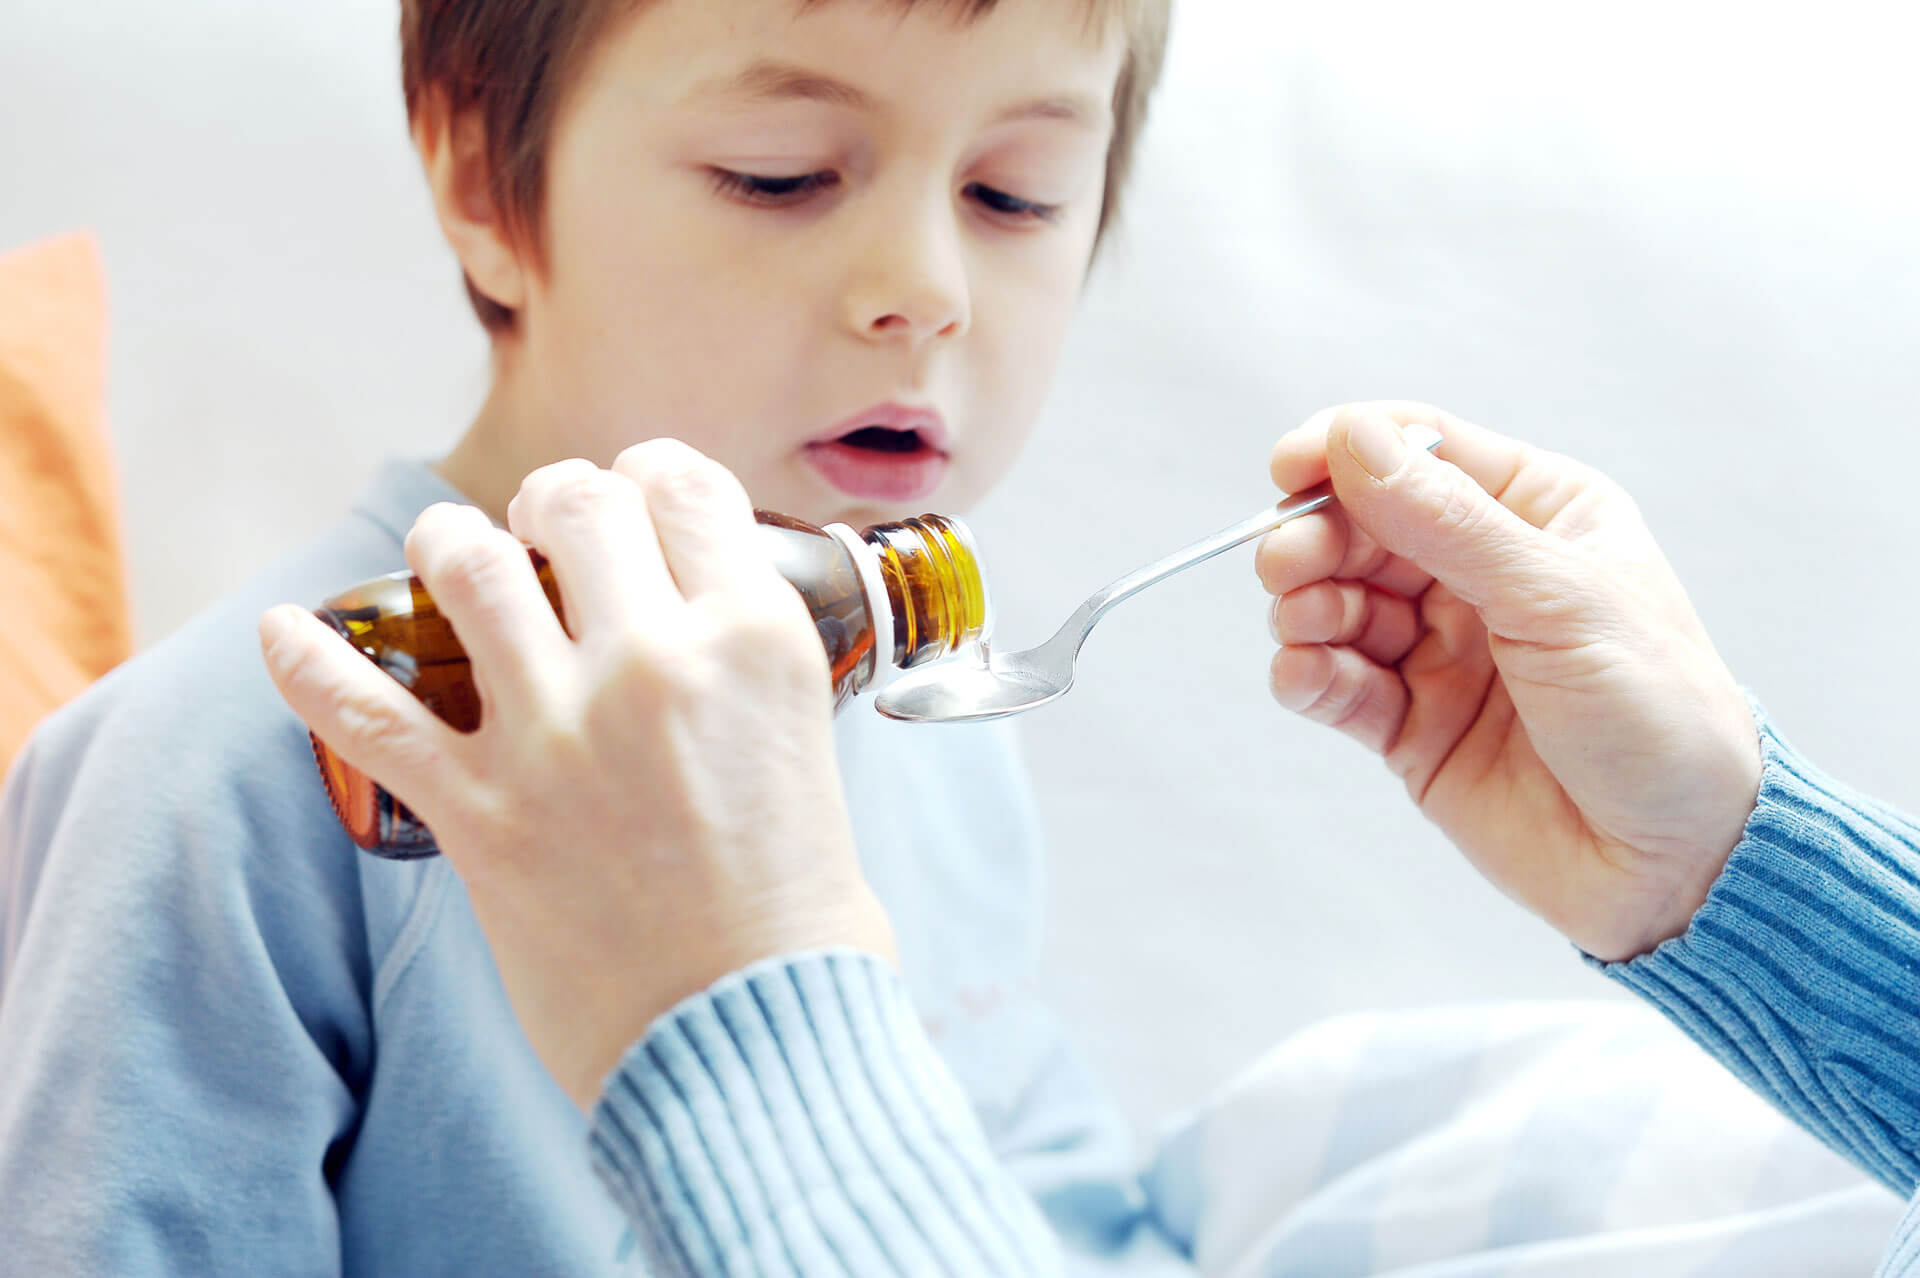 Case Study to curing children's aversion to medicine